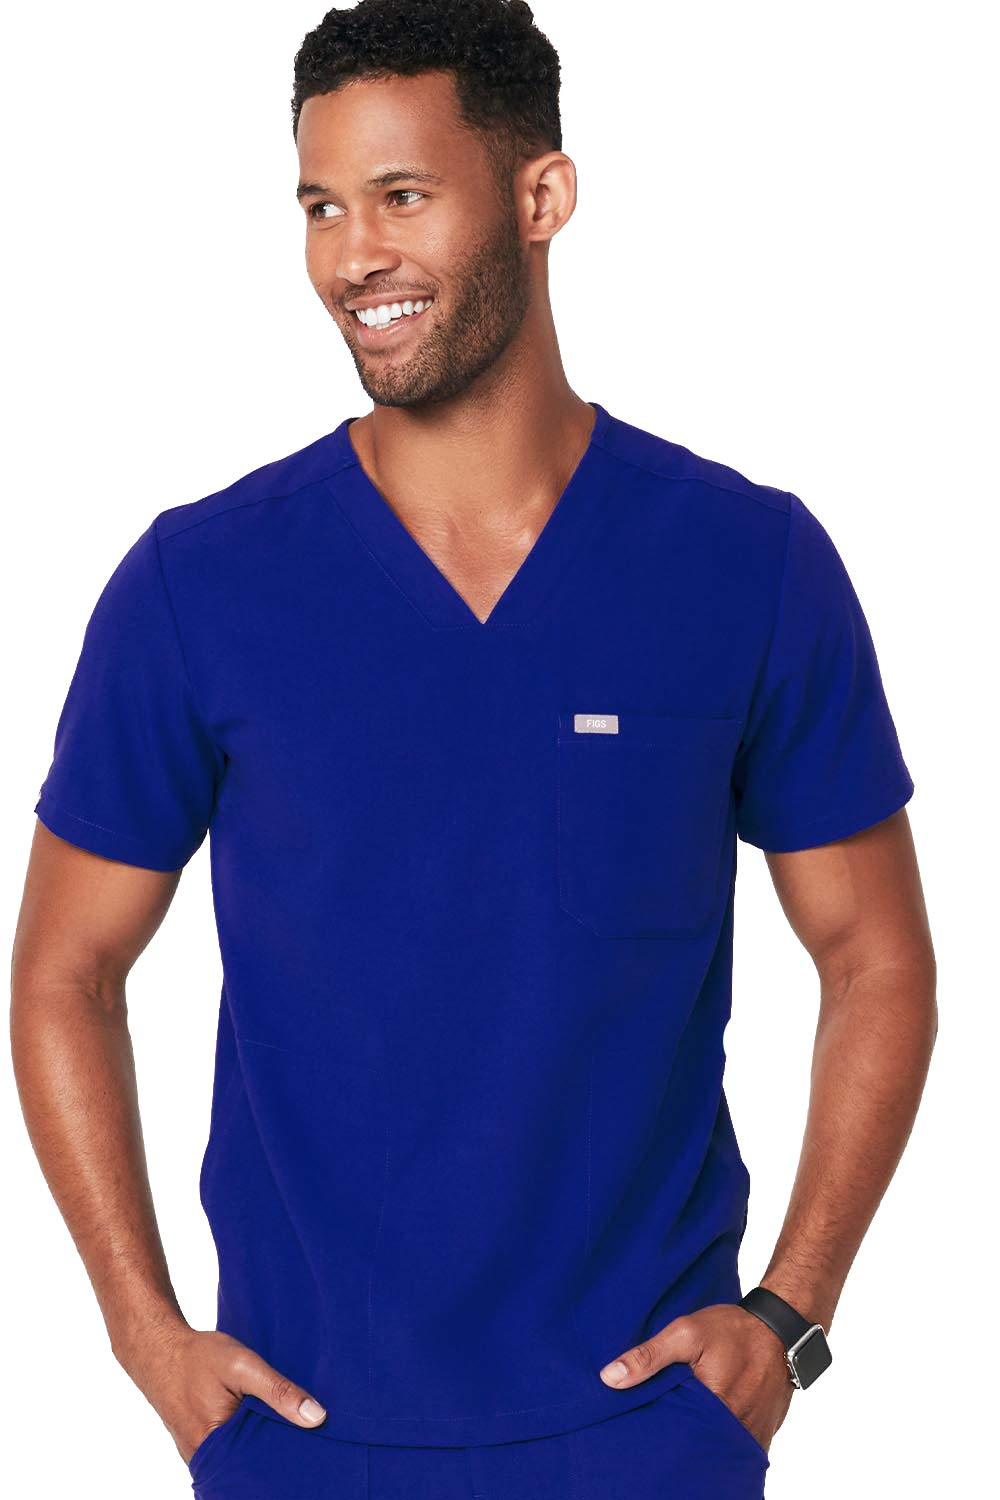 FIGS Medical Scrubs Men's Chisec Three Pocket Top, Deep Royal Blue M by FIGS